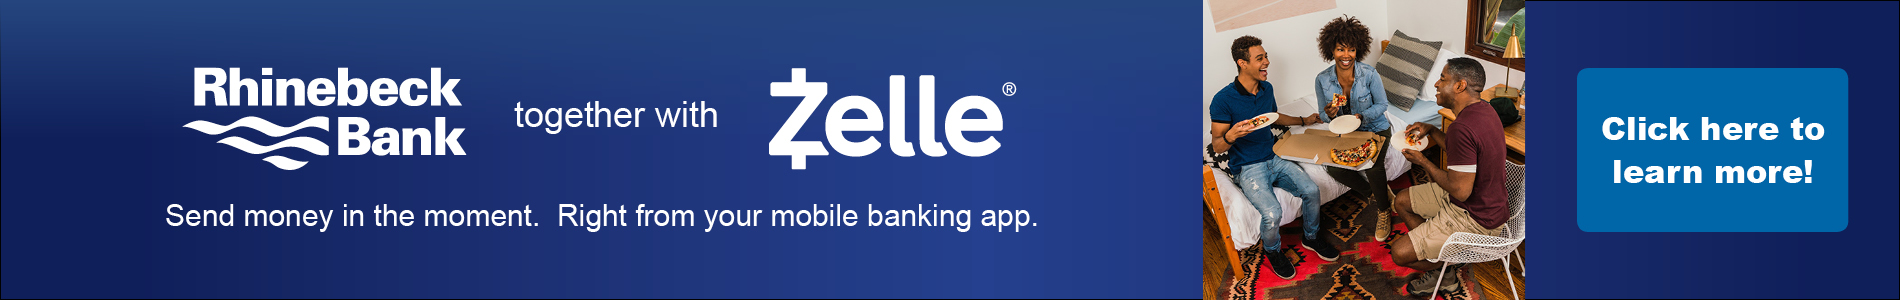 Zelle promo - homepage banner ad